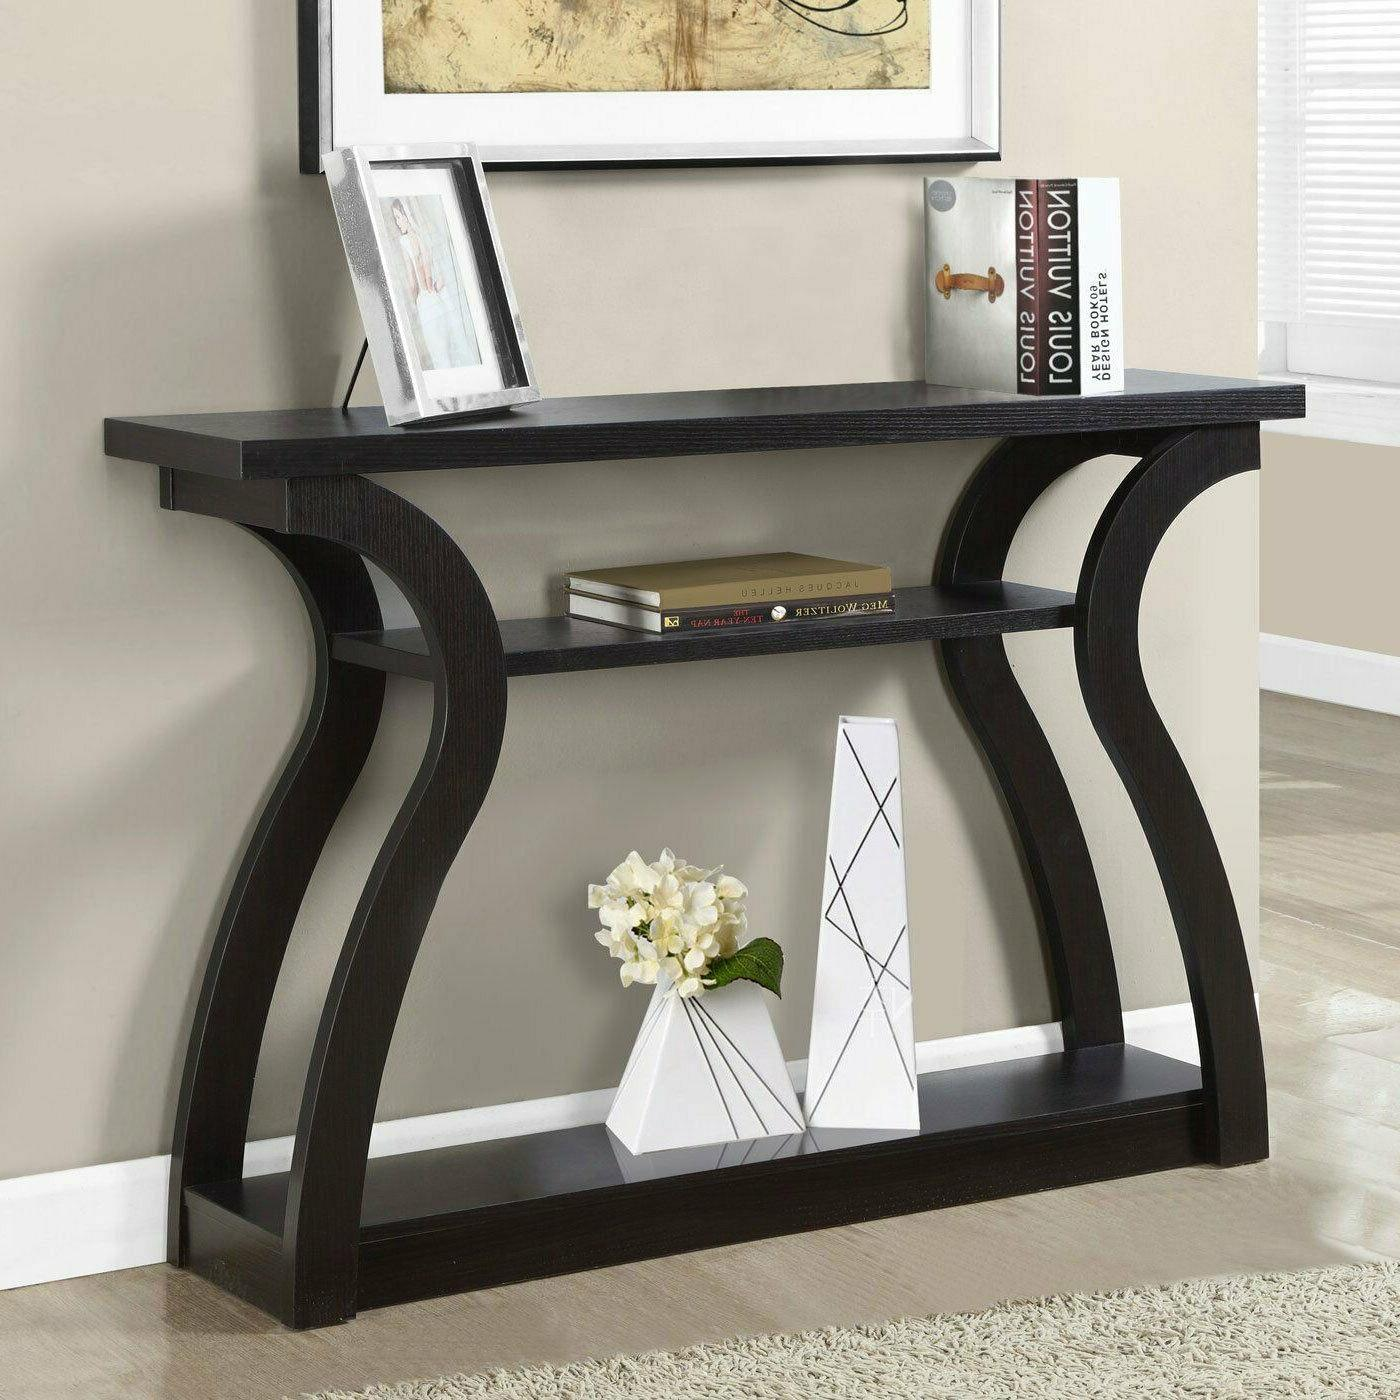 Entryway Accent Table Console Entry Way Hallway